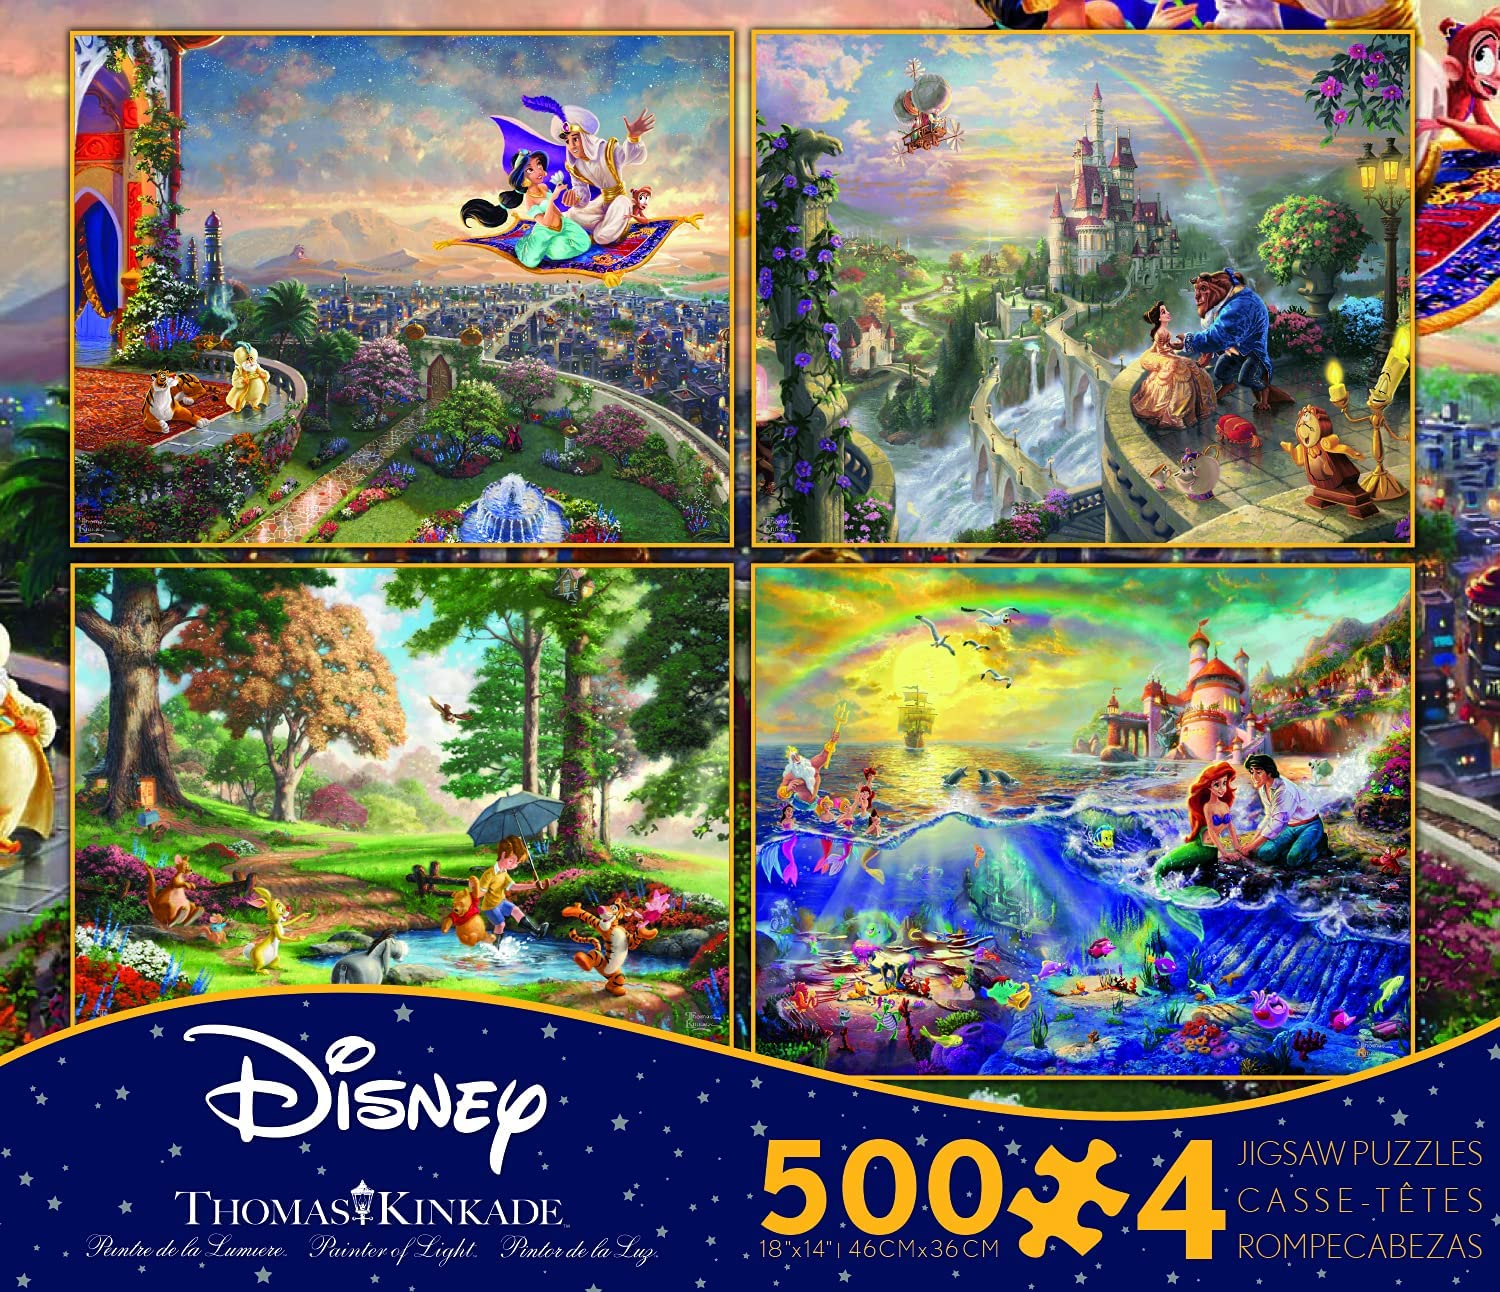 Ceaco Thomas Kinkade The Disney Dreams Collection 4 in 1 Multipack Aladdin, Winnie the Pooh, Beauty & the Beast, The Little Mermaid Jigsaw Puzzles, (4) 500 Pieces : Everything Else